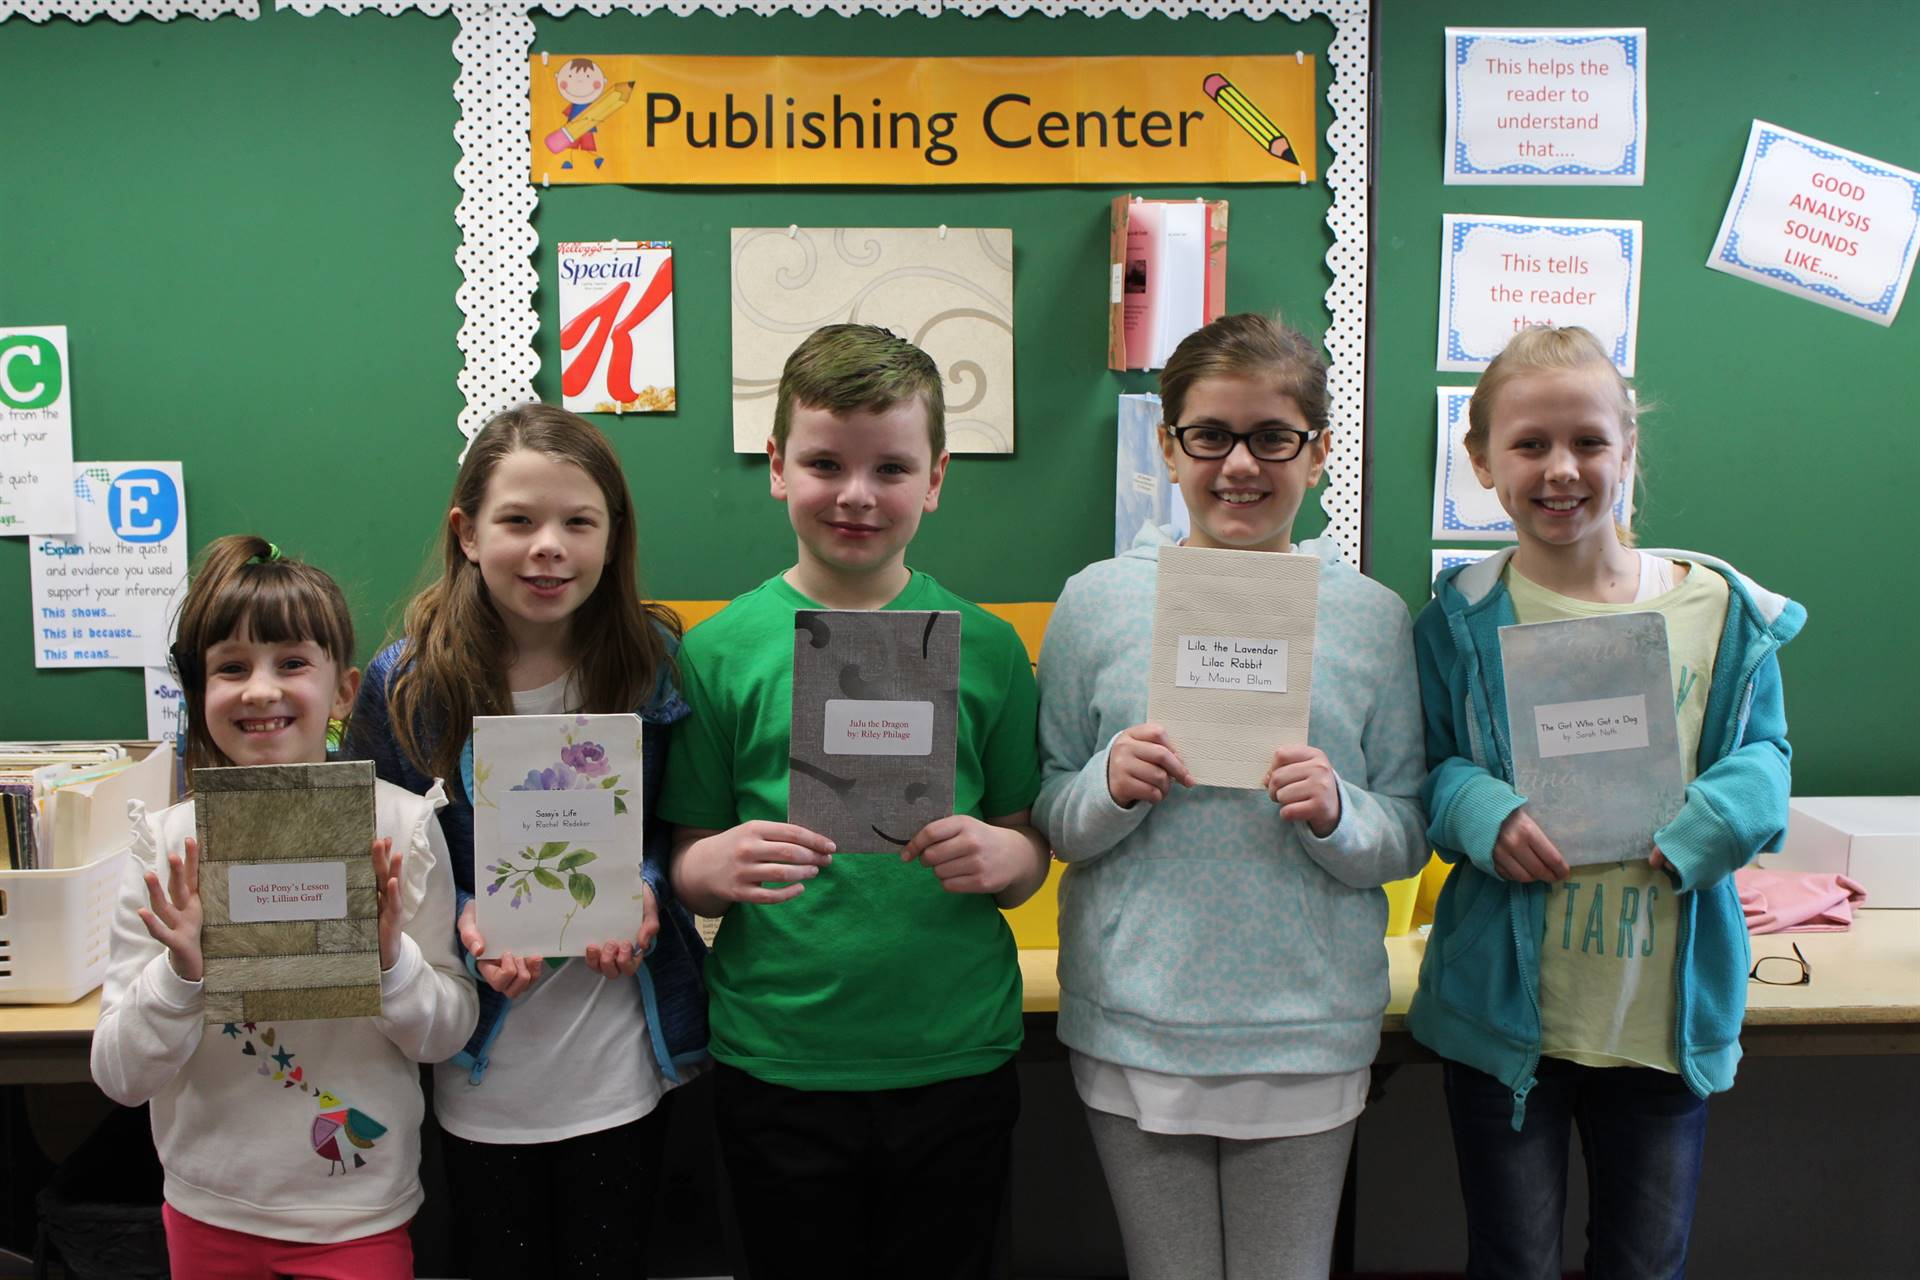 Five students with their books in the Publishing Center